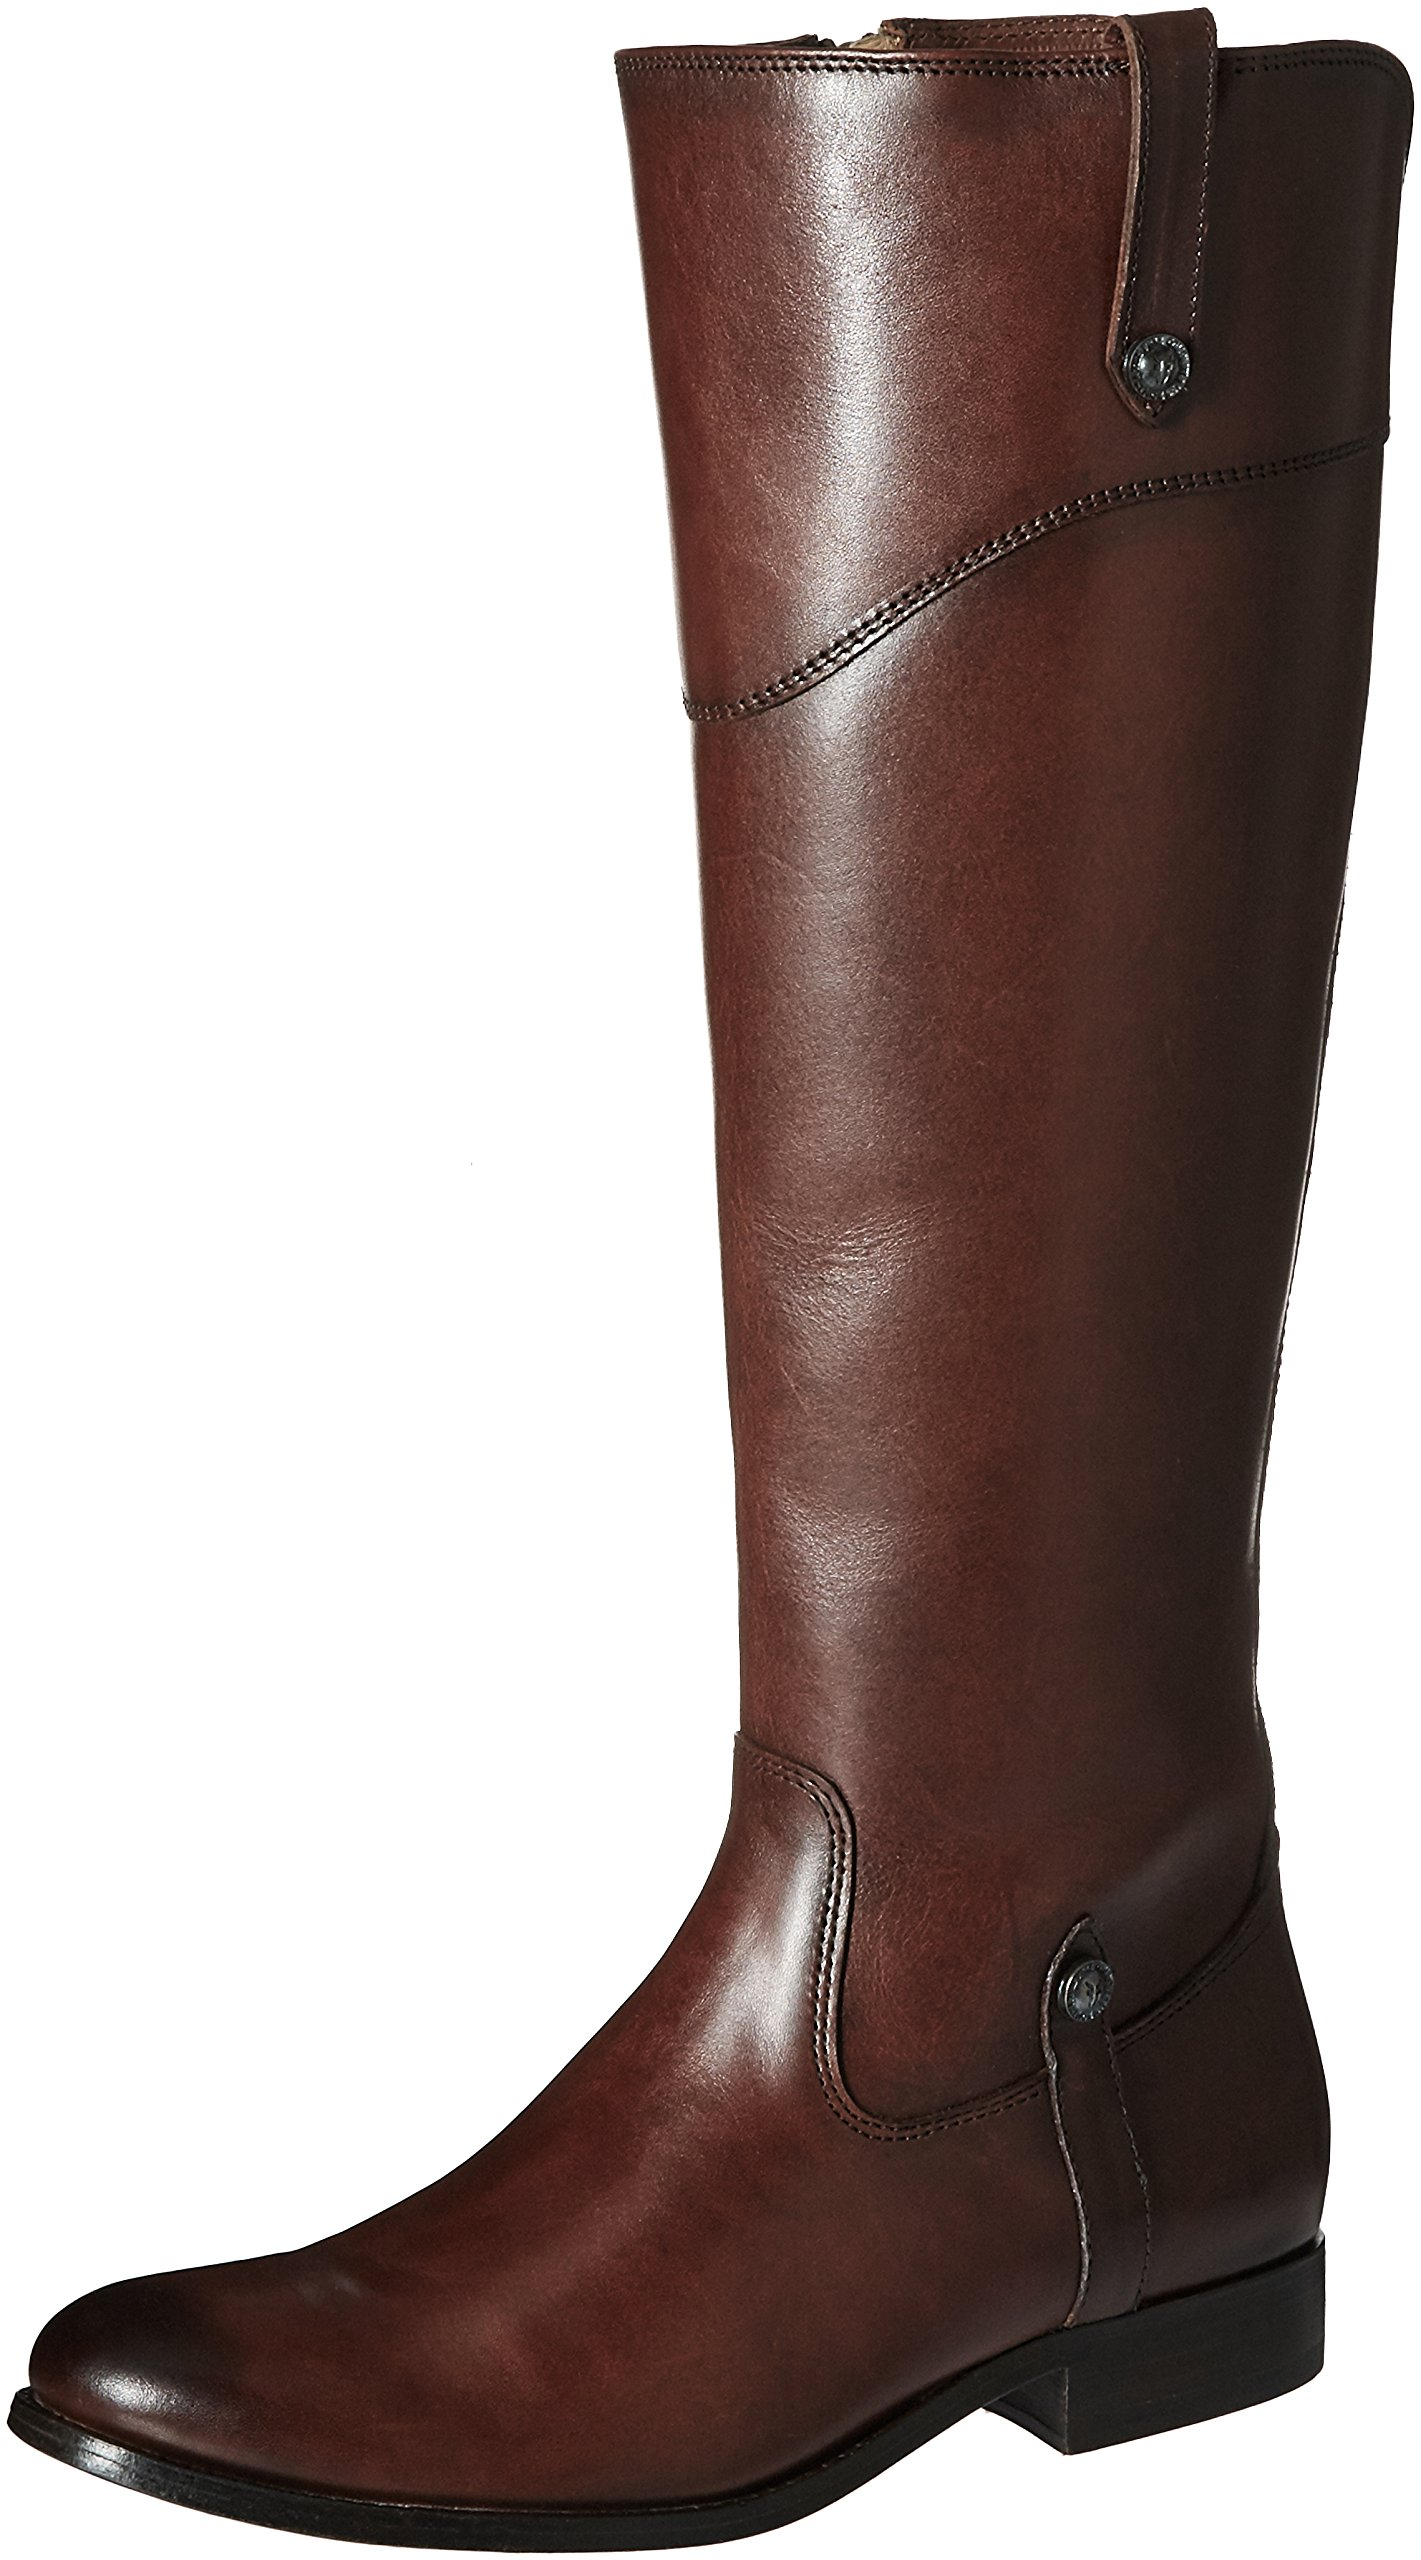 FRYE Women's Melissa Tab Tall Riding Boot, Redwood, 10 M US